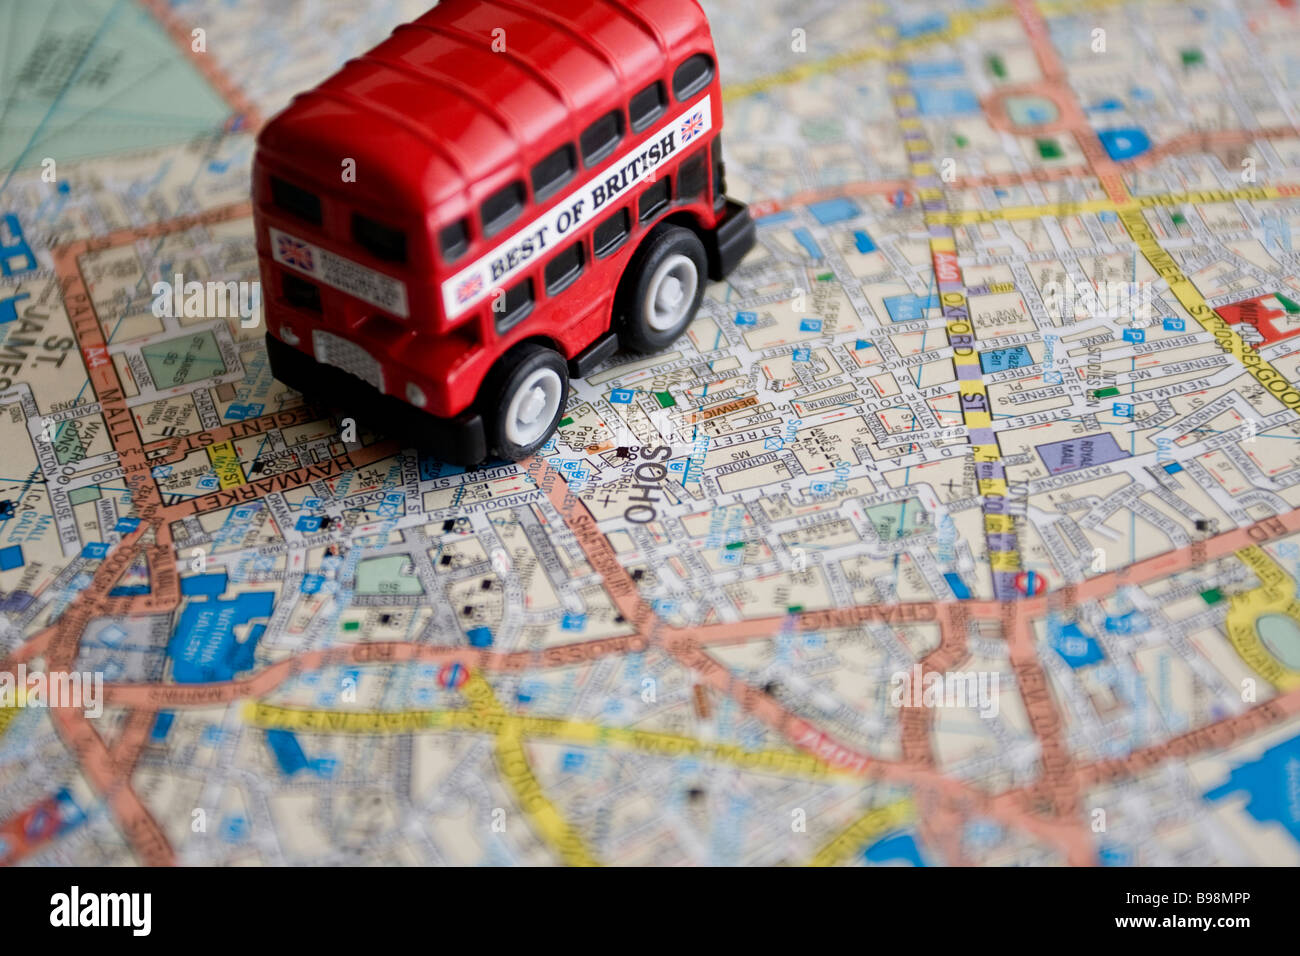 red double decker toy bus on london central map